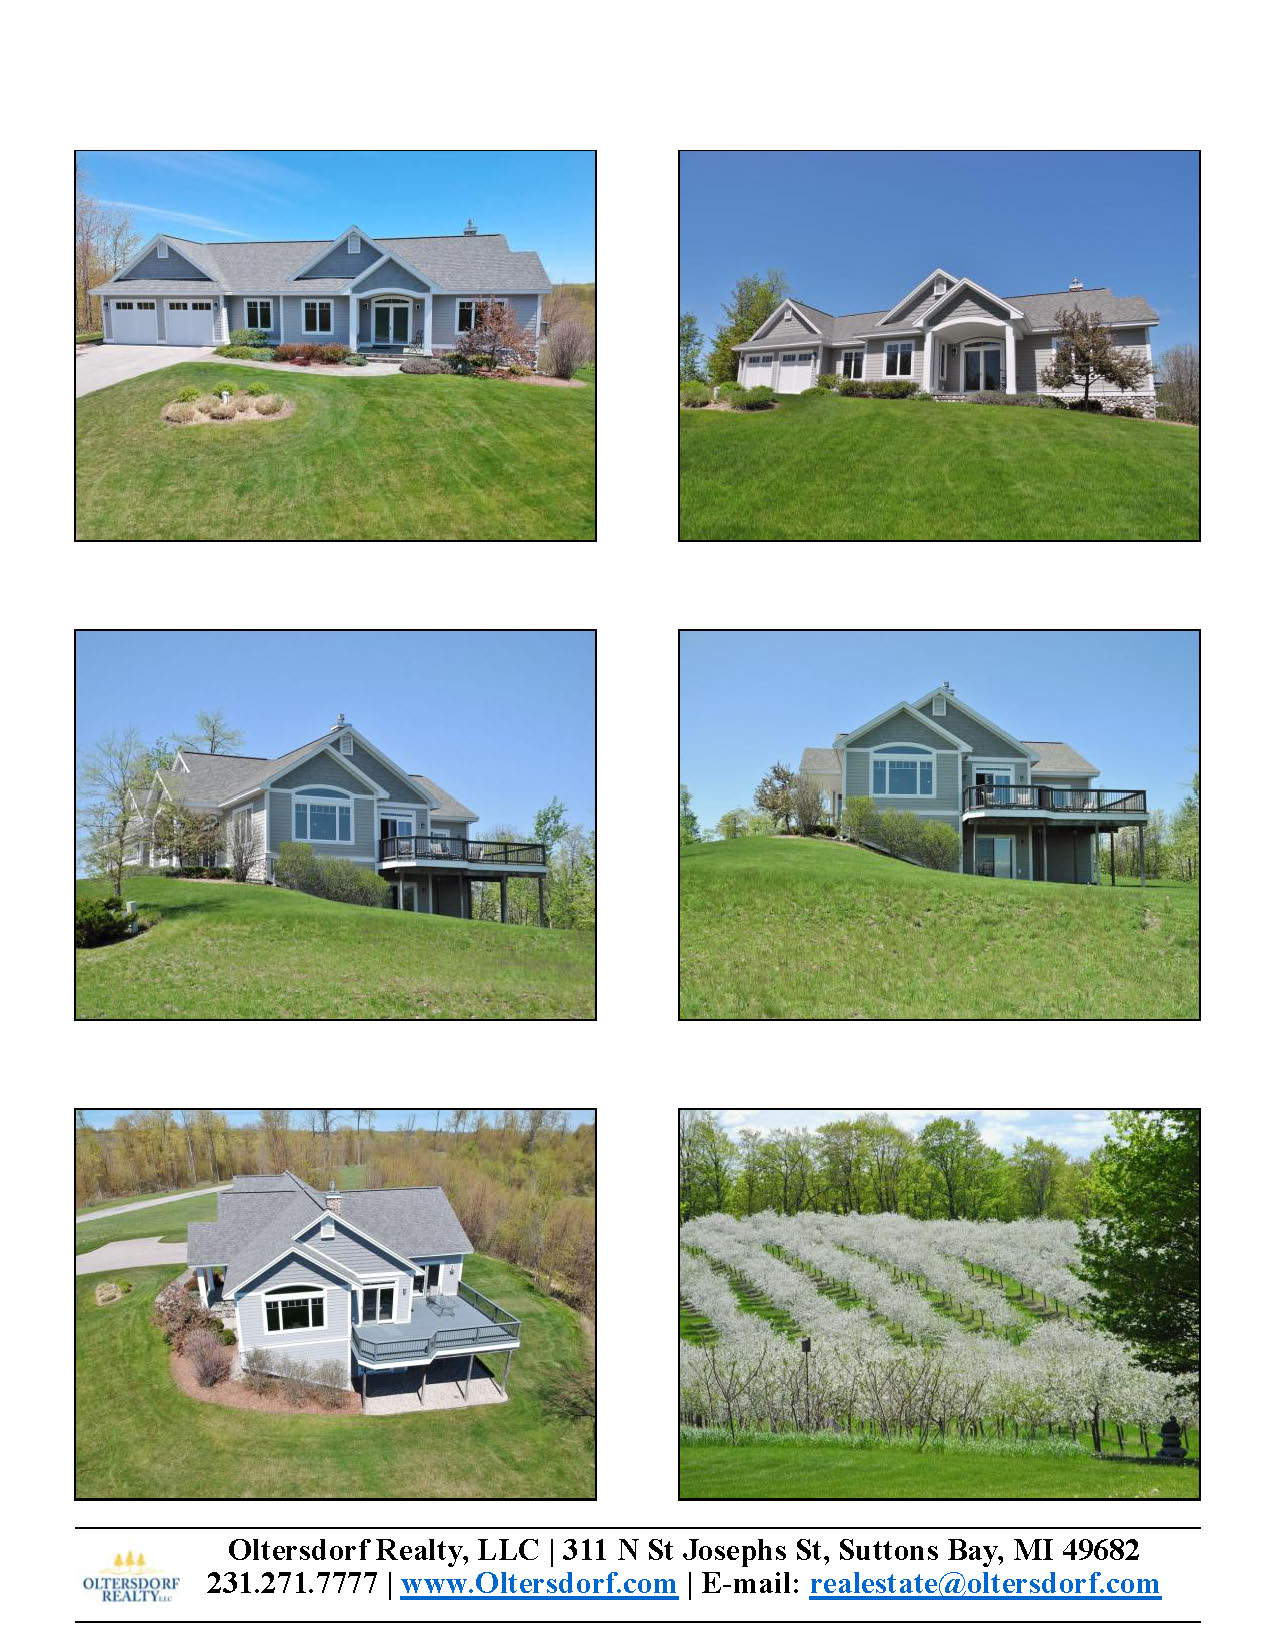 1900 N Blue Water Ct, Suttons Bay, MI – Ranch Home & Water Views - Marketing PAcket by Oltersdorf Realty LLC (2).jpg